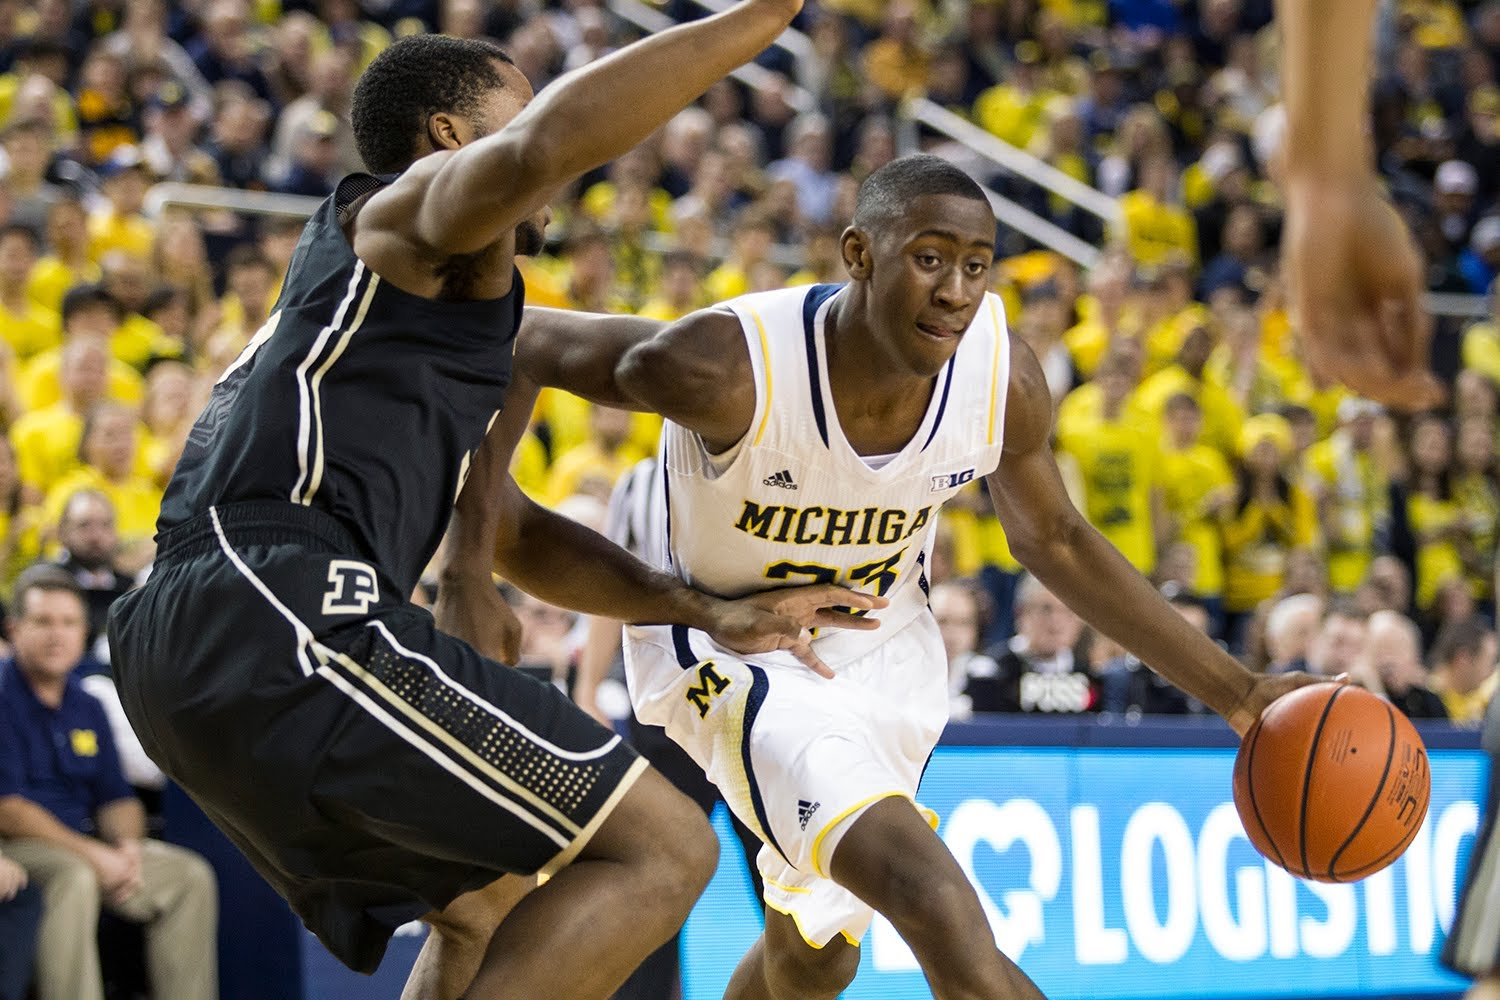 Video: Michigan players react to win over Purdue